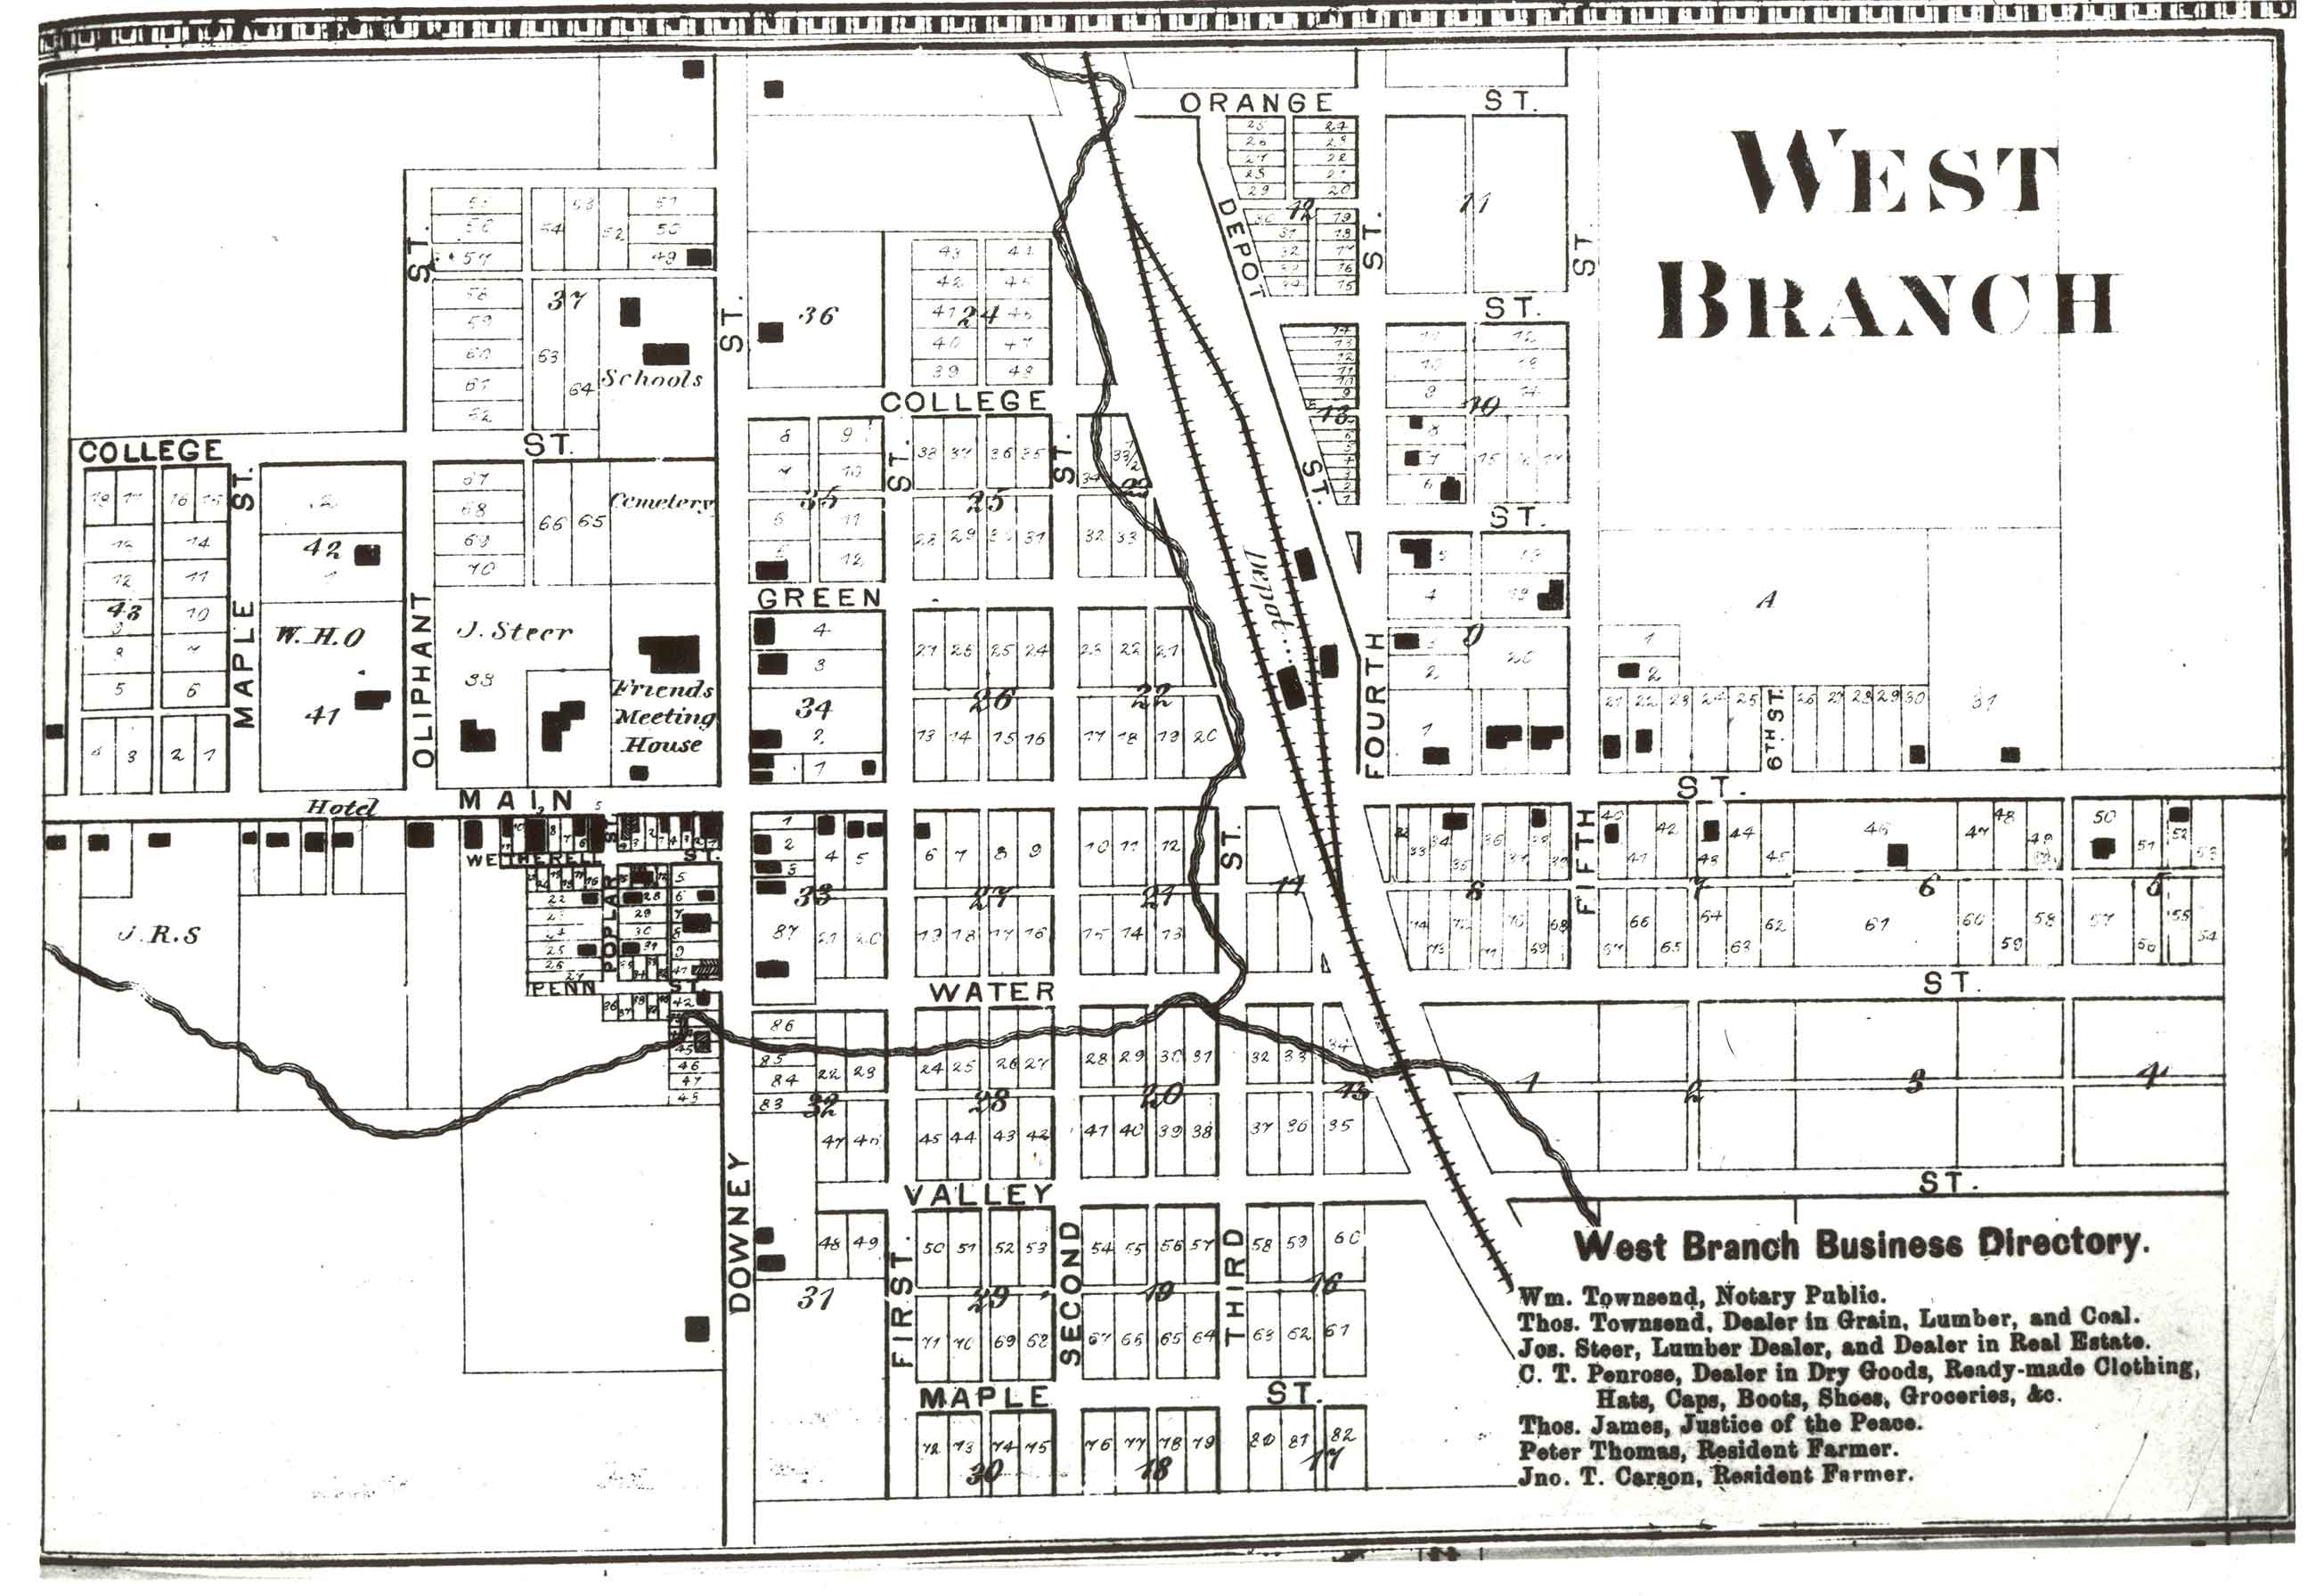 A black and white map drawing depicts a small town with a railroad.